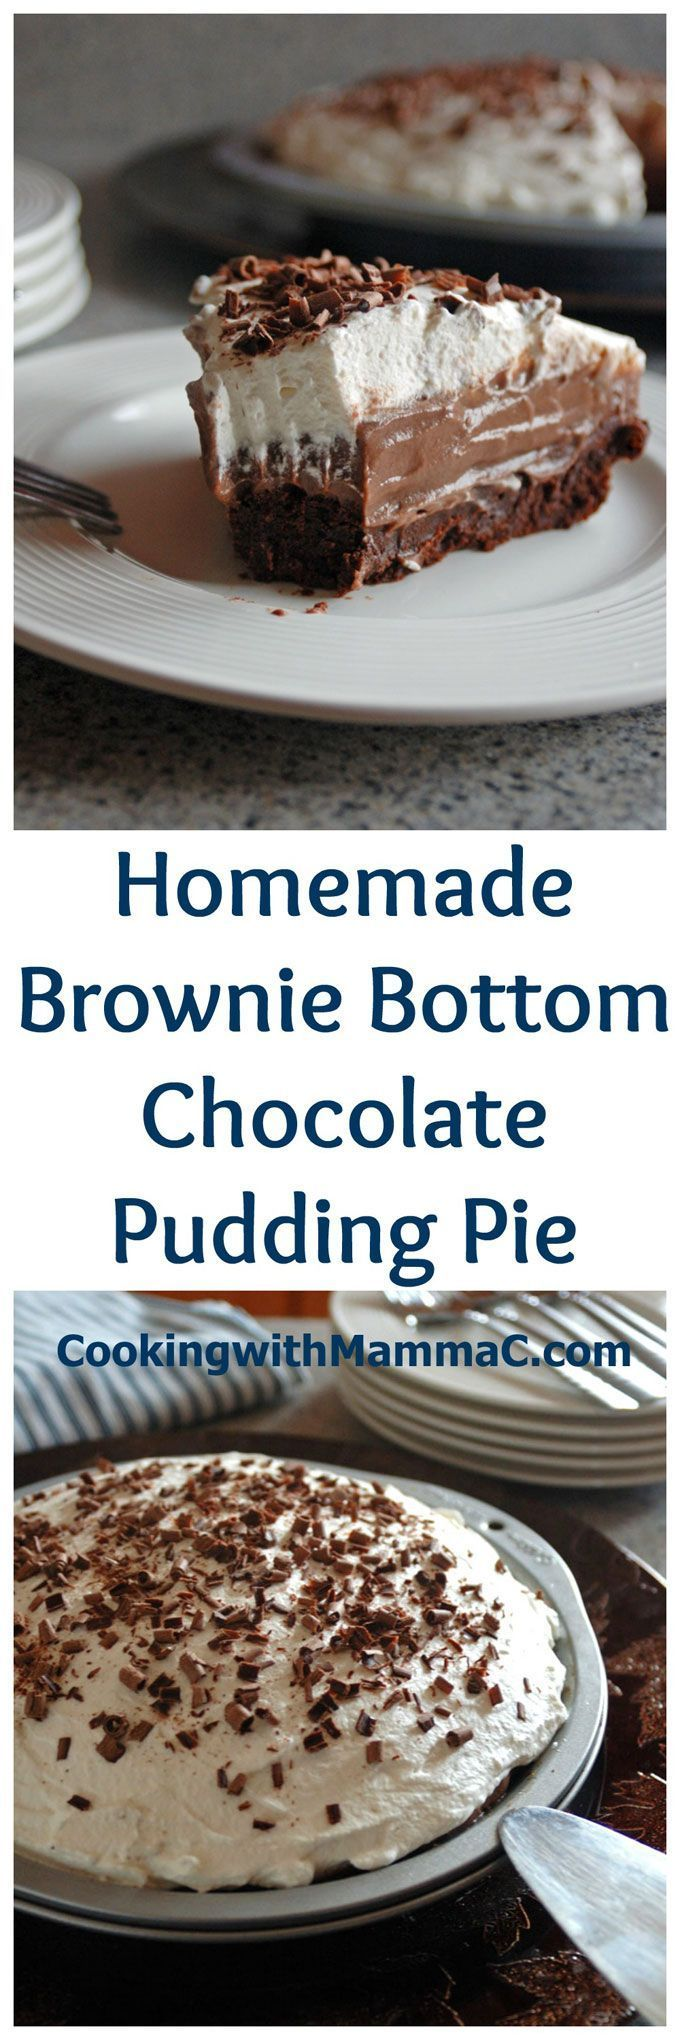 Homemade Brownie Bottom Chocolate Pudding Pie                                                                                                                                                      More